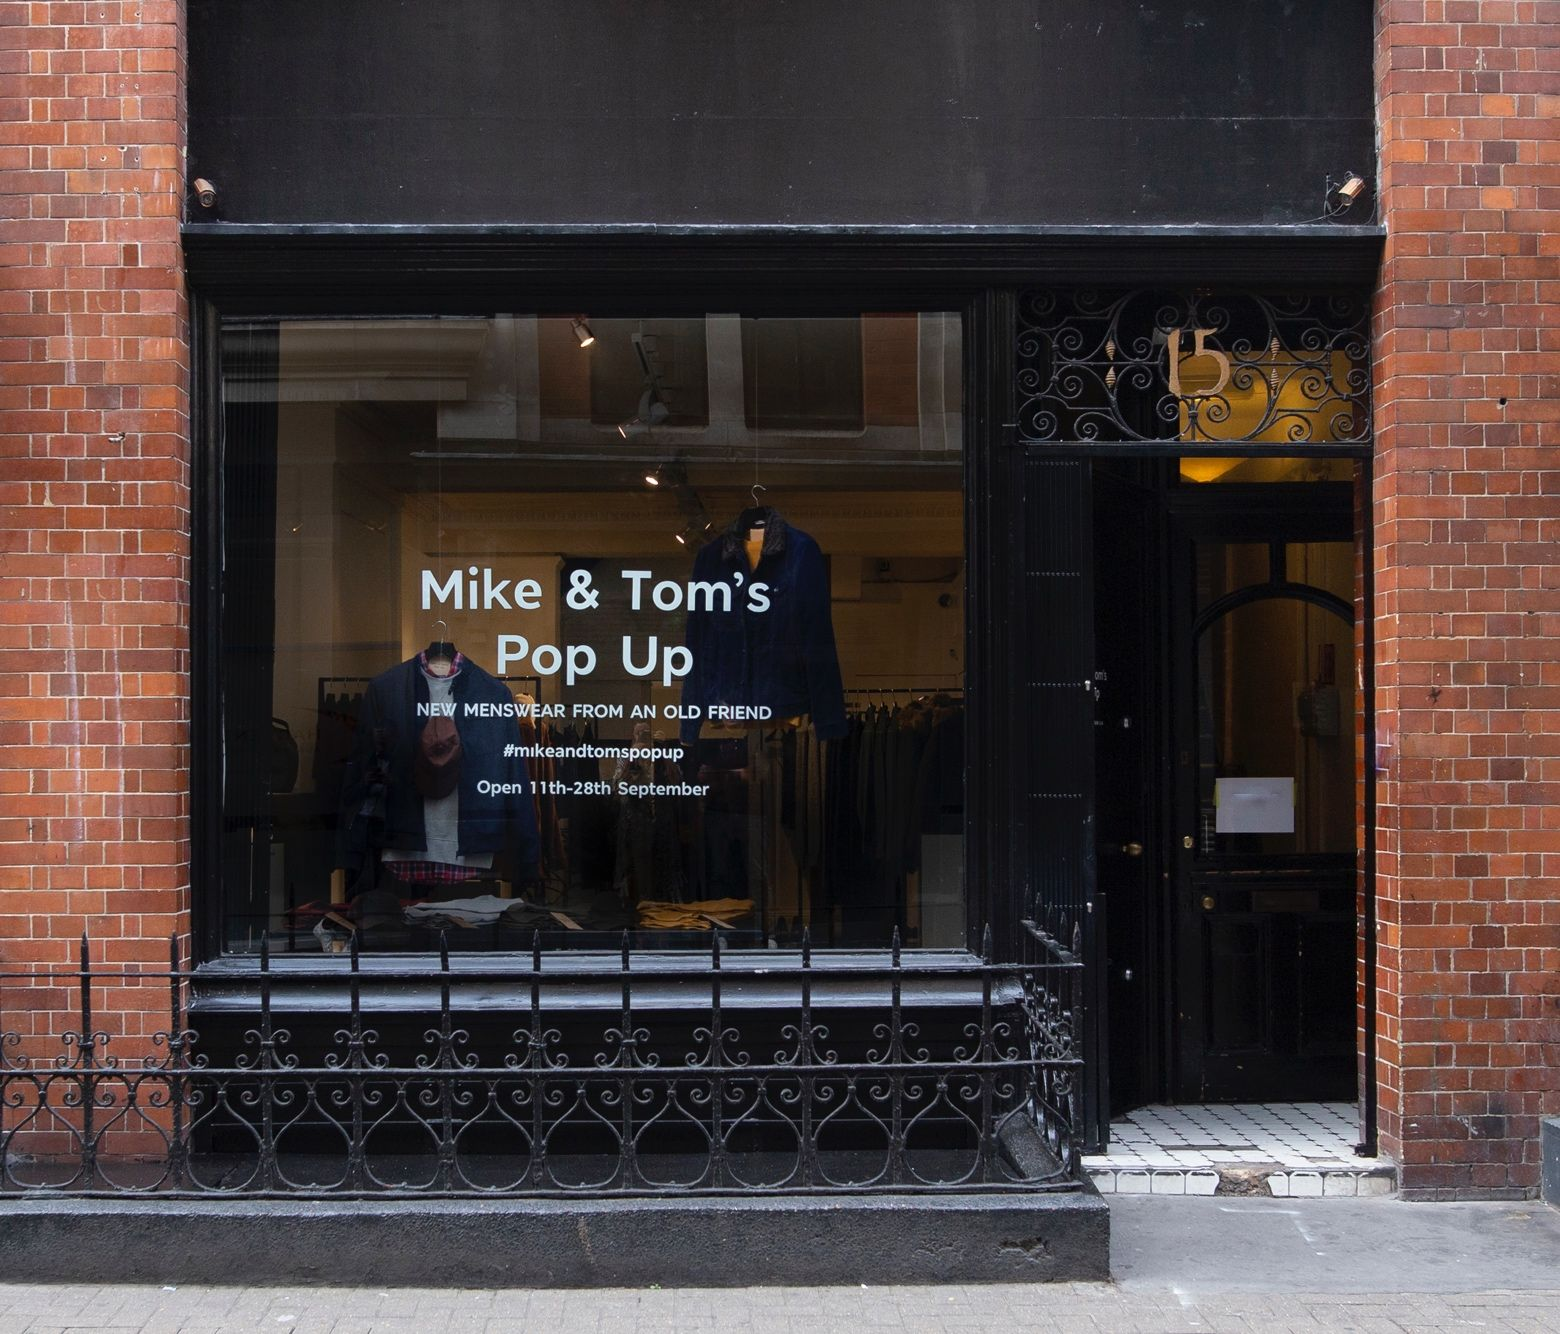 Marks & Spencer's Menswear Pop-up Just Opened in Soho